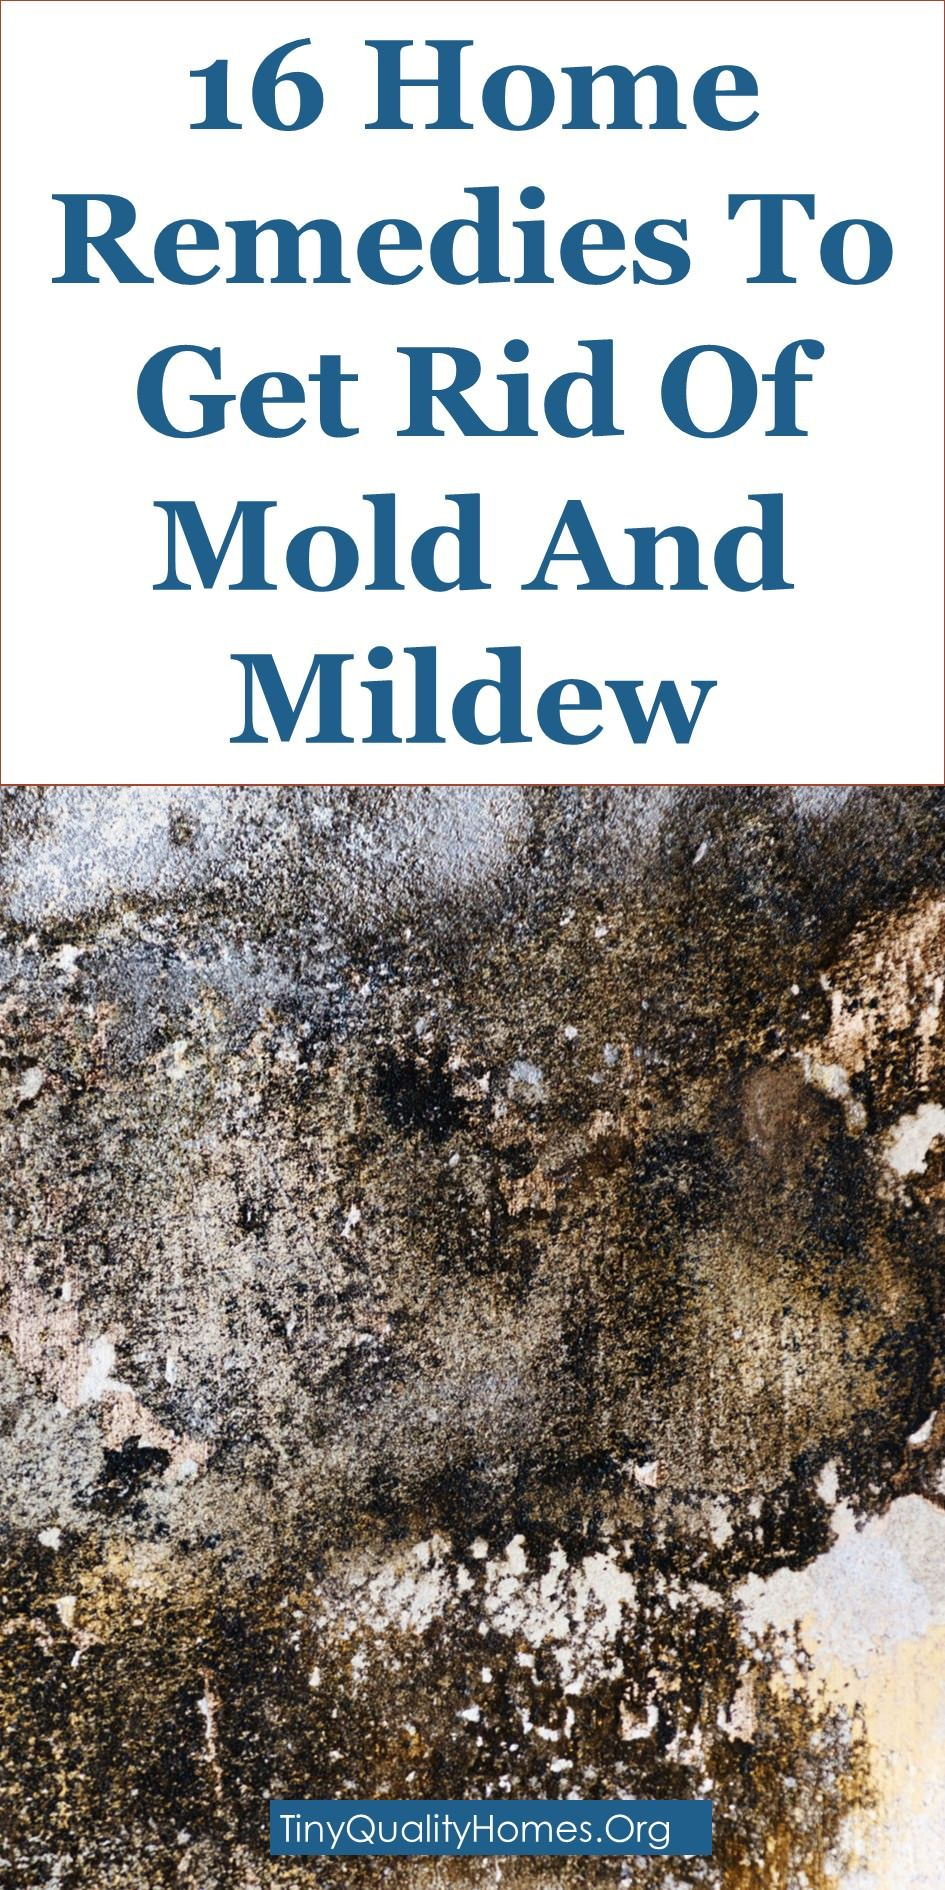 16 Home Remedies To Get Rid Of Mold (Mould) And Mildew | This Guide Shares  Insights On The Following; Mold On Drywall In Basement, How To Remove Mold  From ...